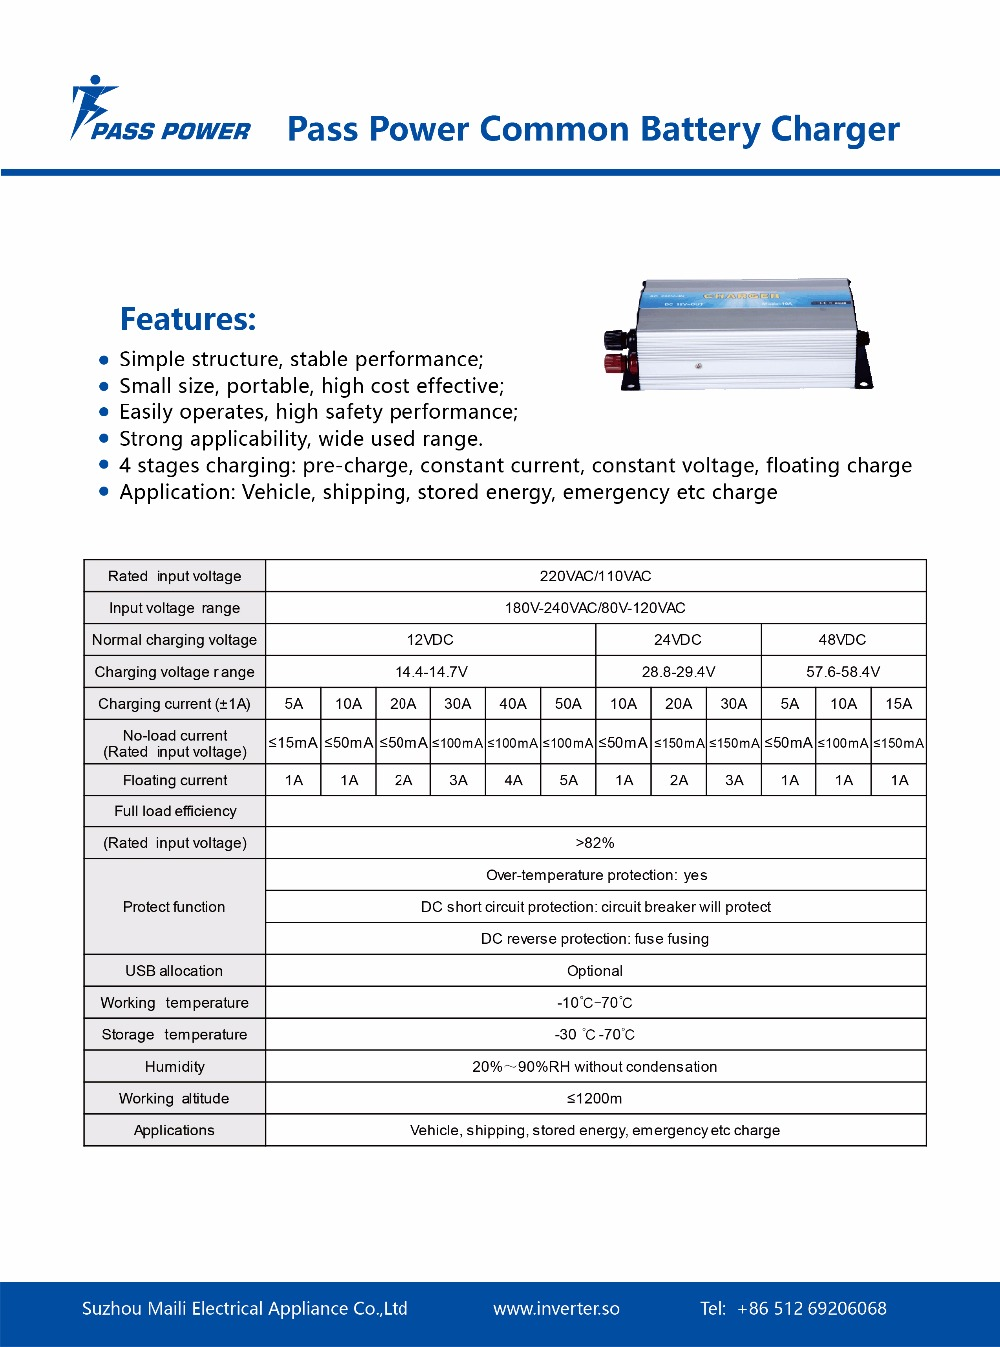 Datasheet-Common Battery Charger